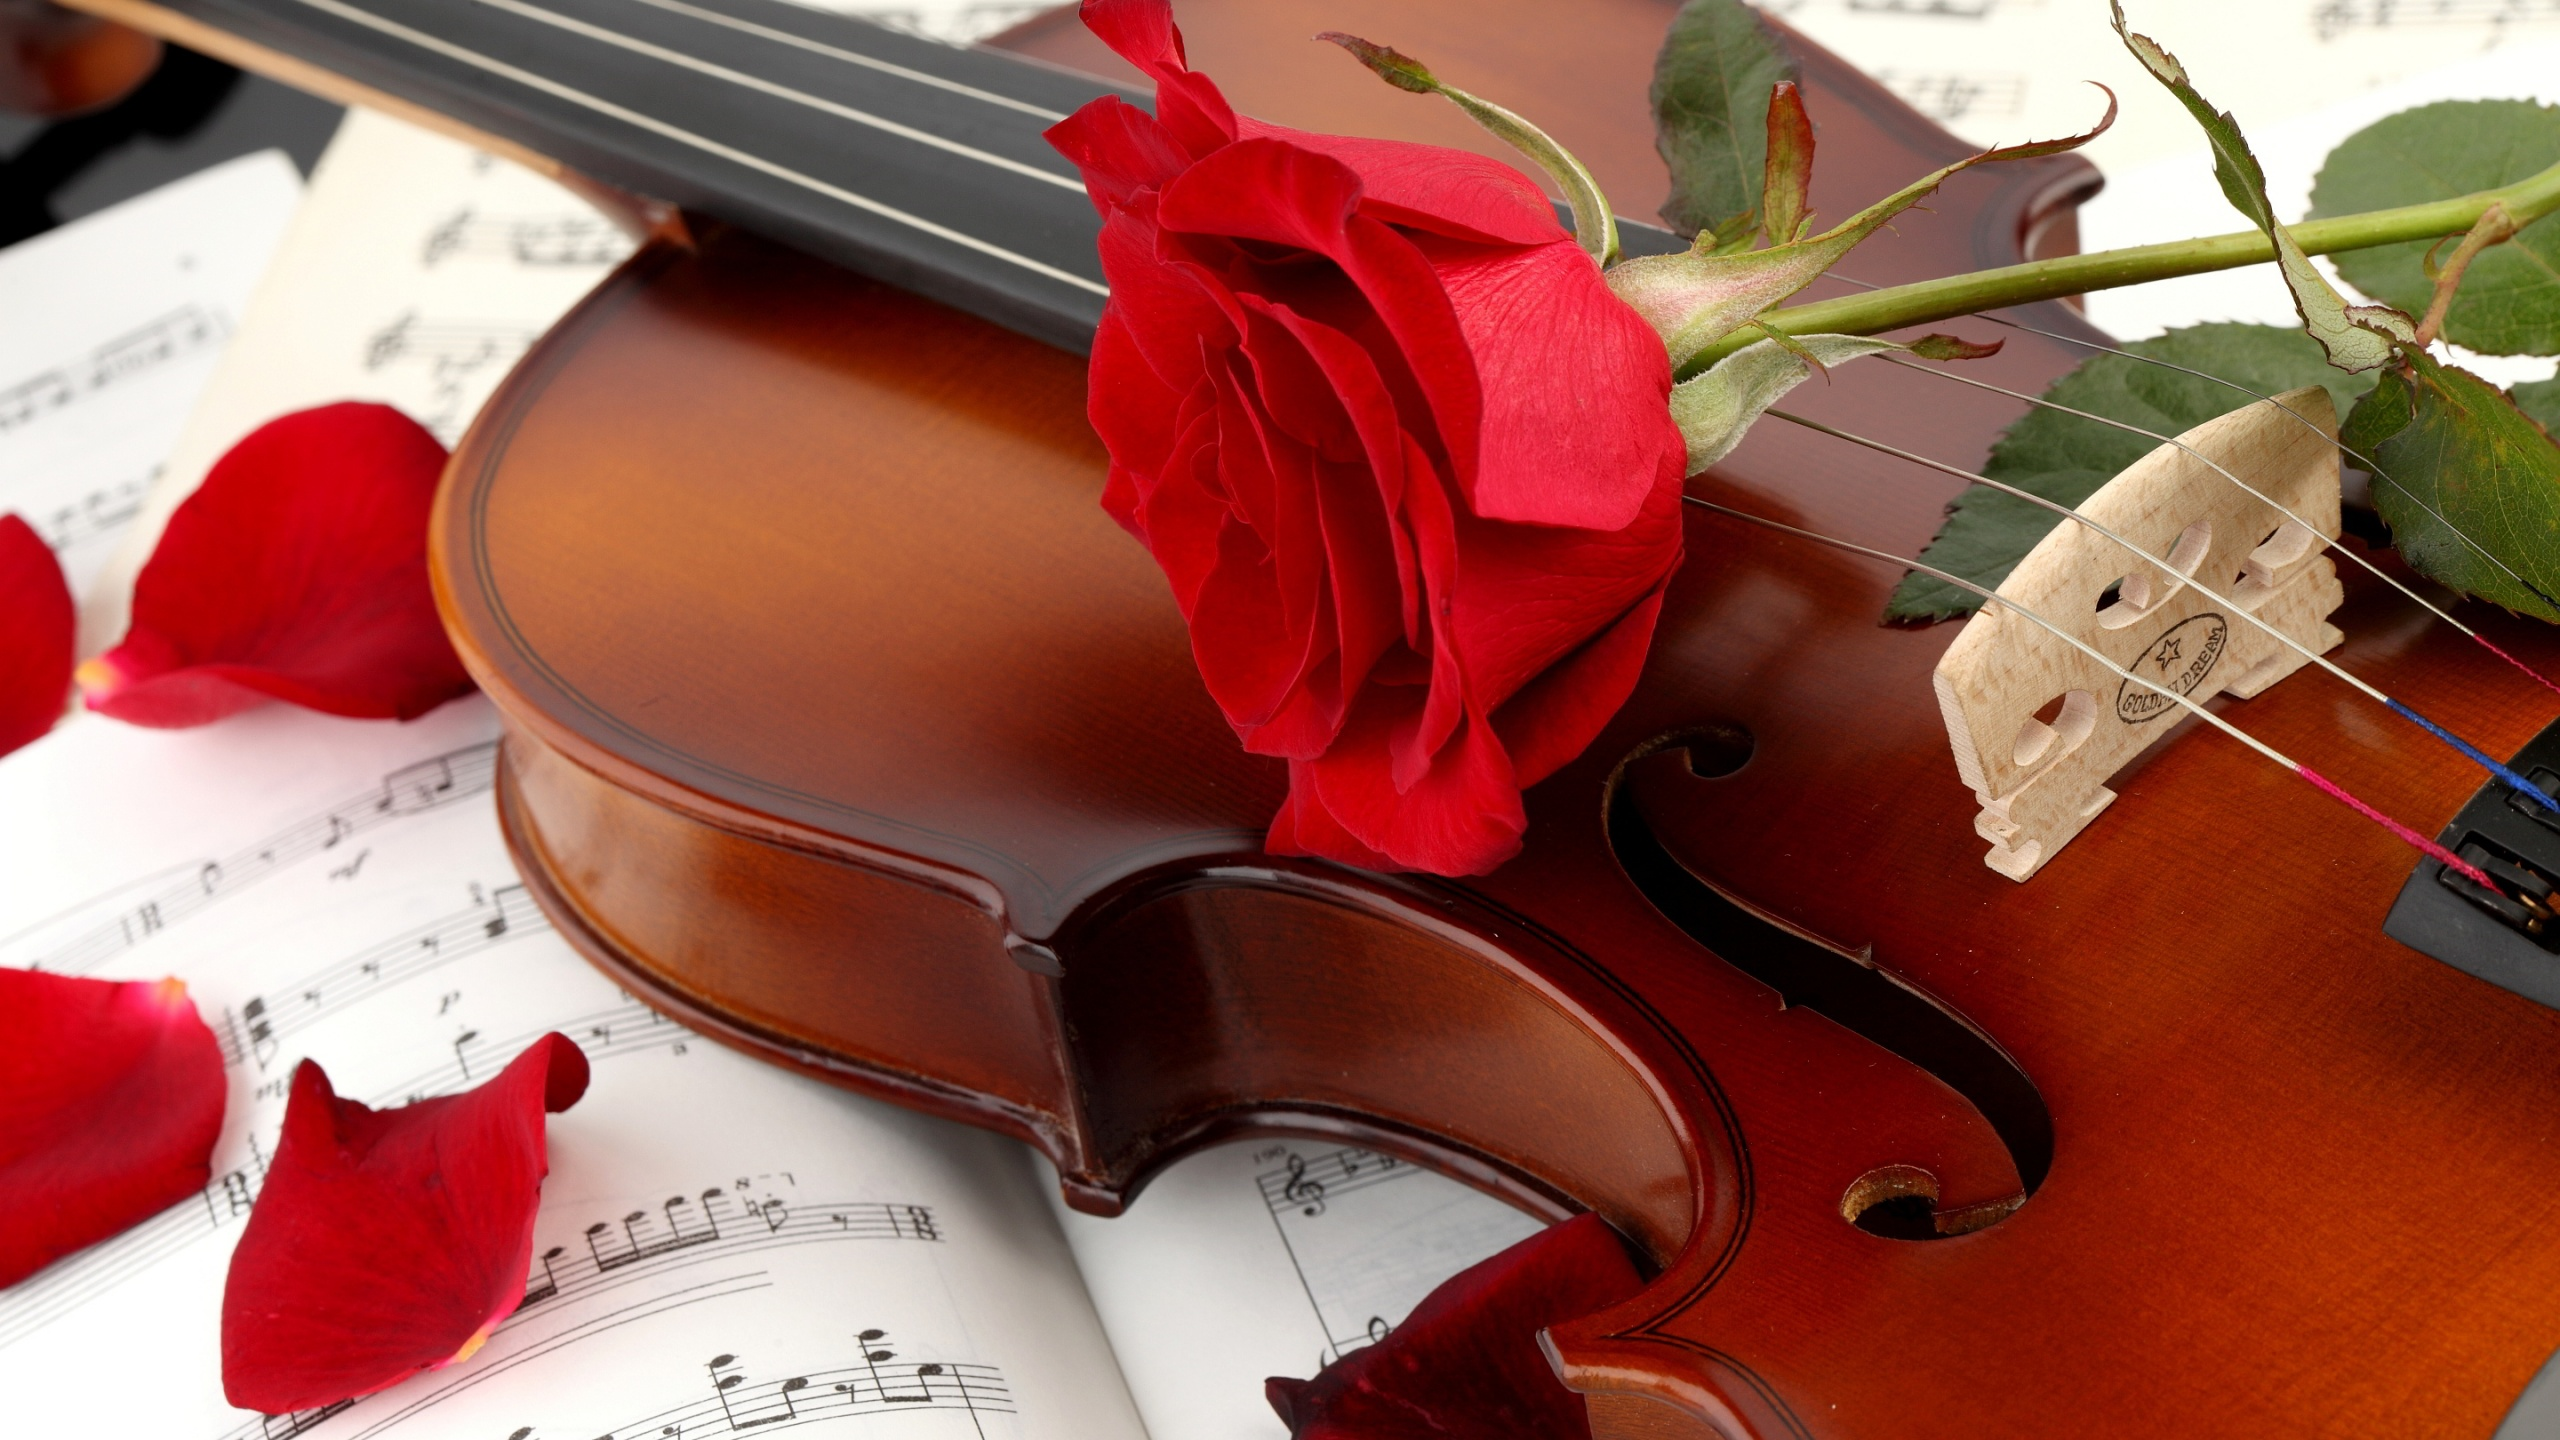 Red rose on a violin wallpaper